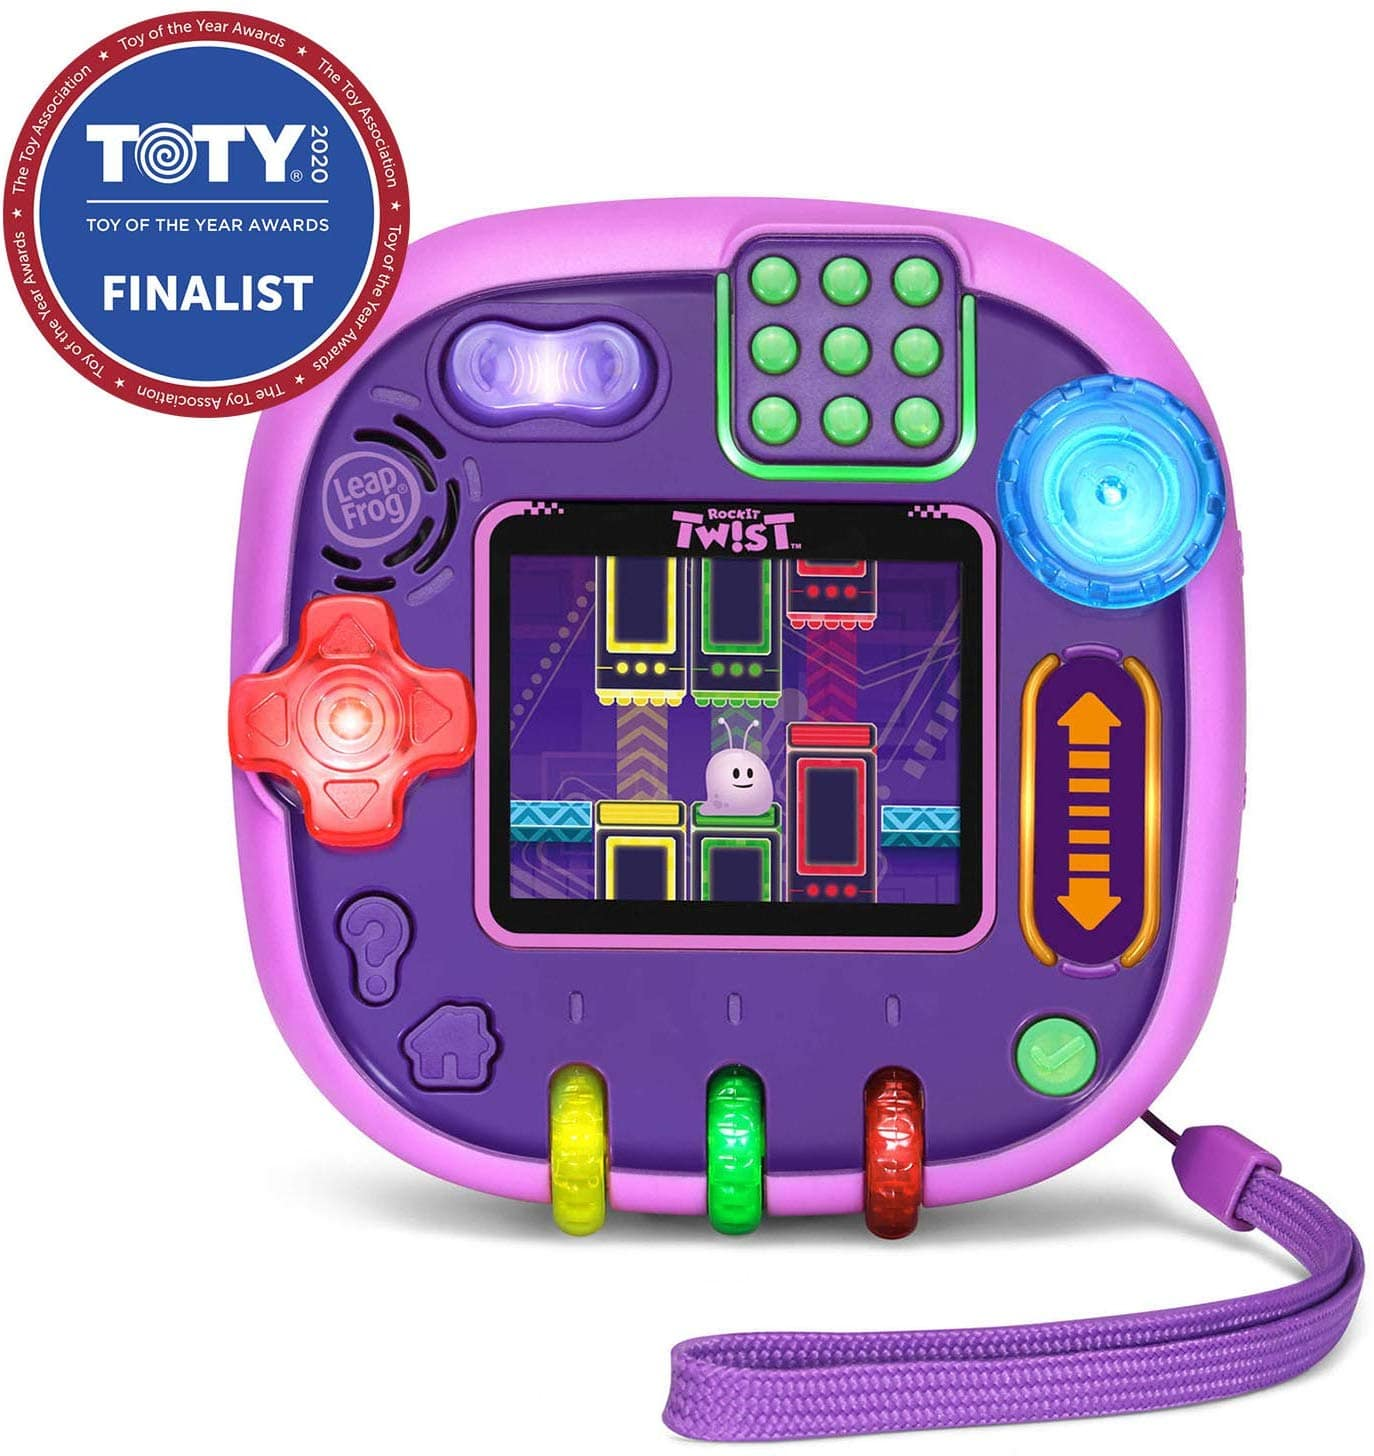 LeapFrog RockIt Twist Handheld Learning Game System (Purple only) $30 + Free shipping